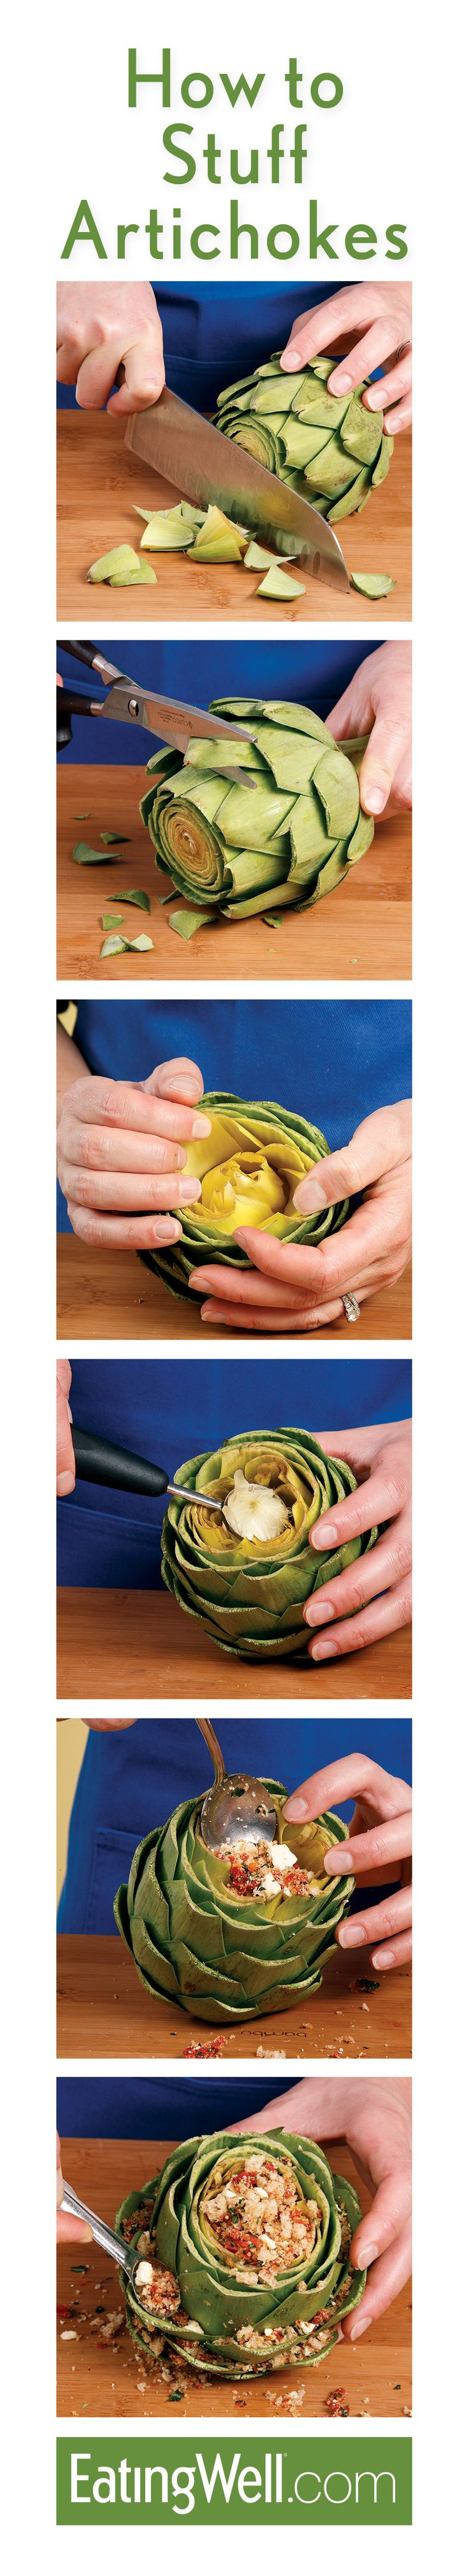 How to stuff artichokes -- Step by step instructions plus recipes